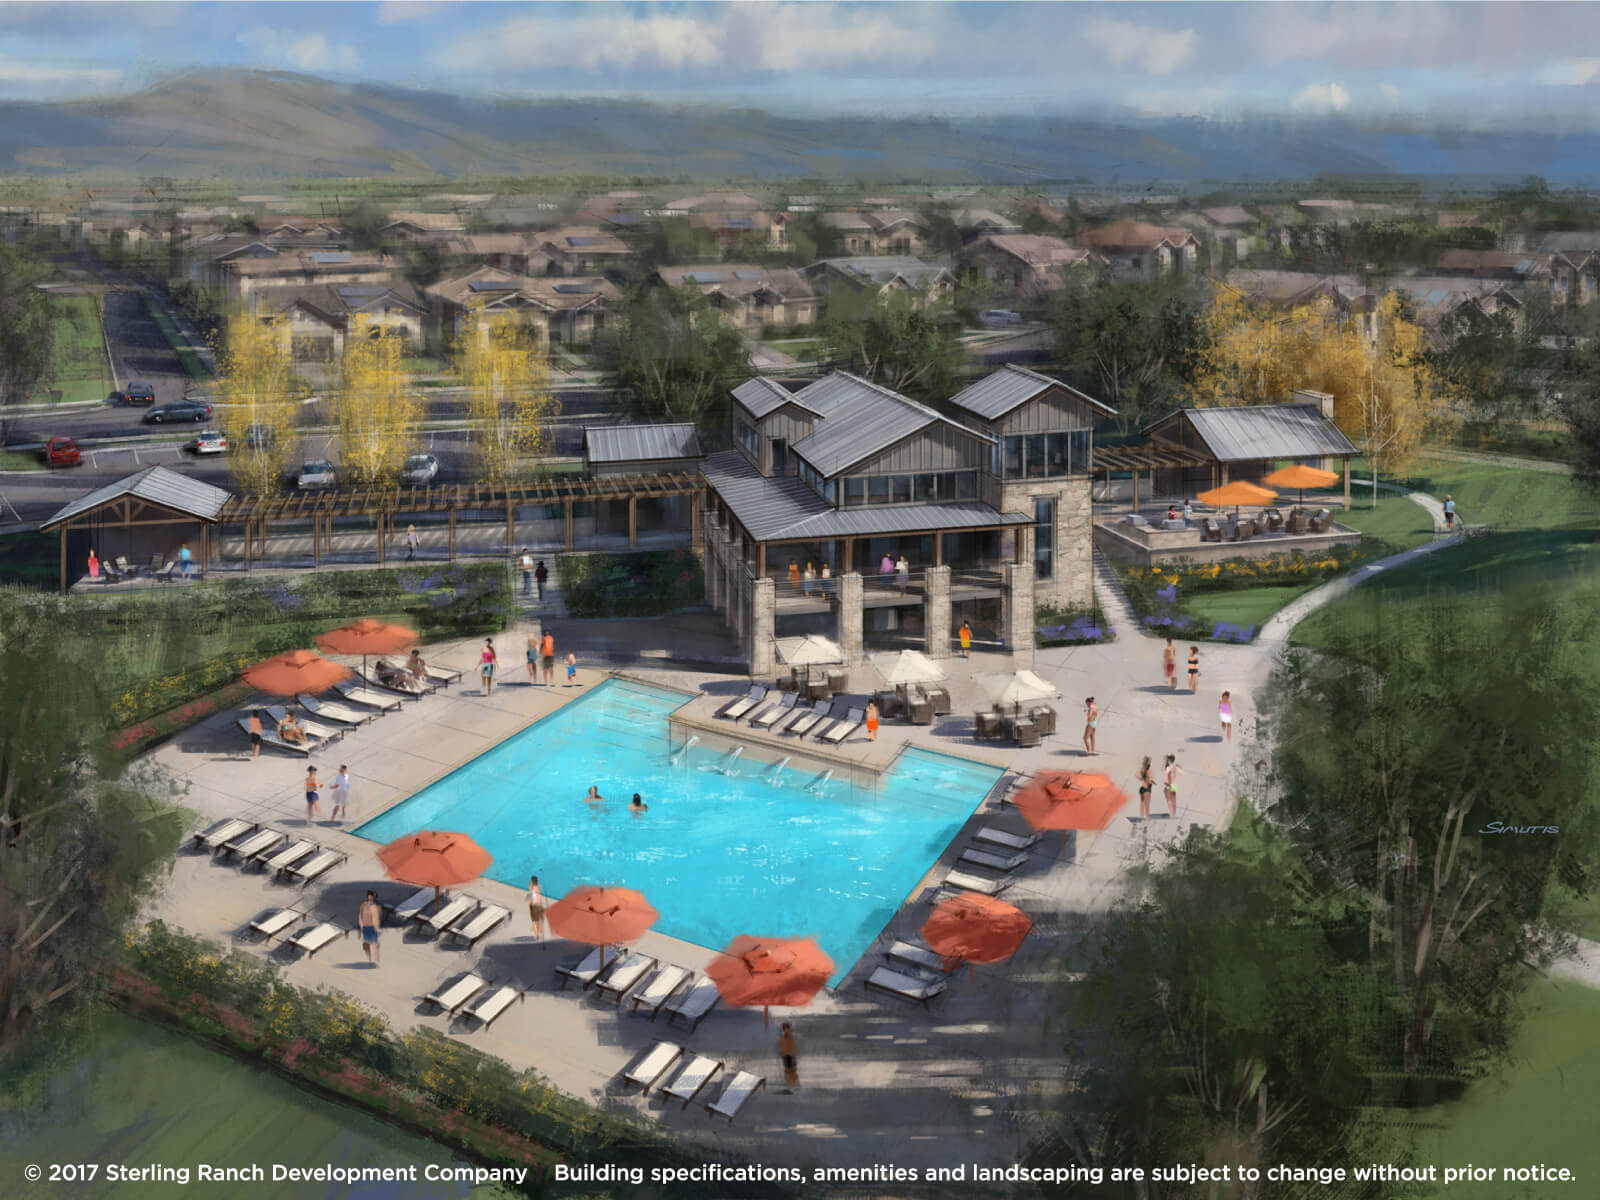 Sterling Ranch Colorado Map.New Home Communities In Denver Co Meritage Homes